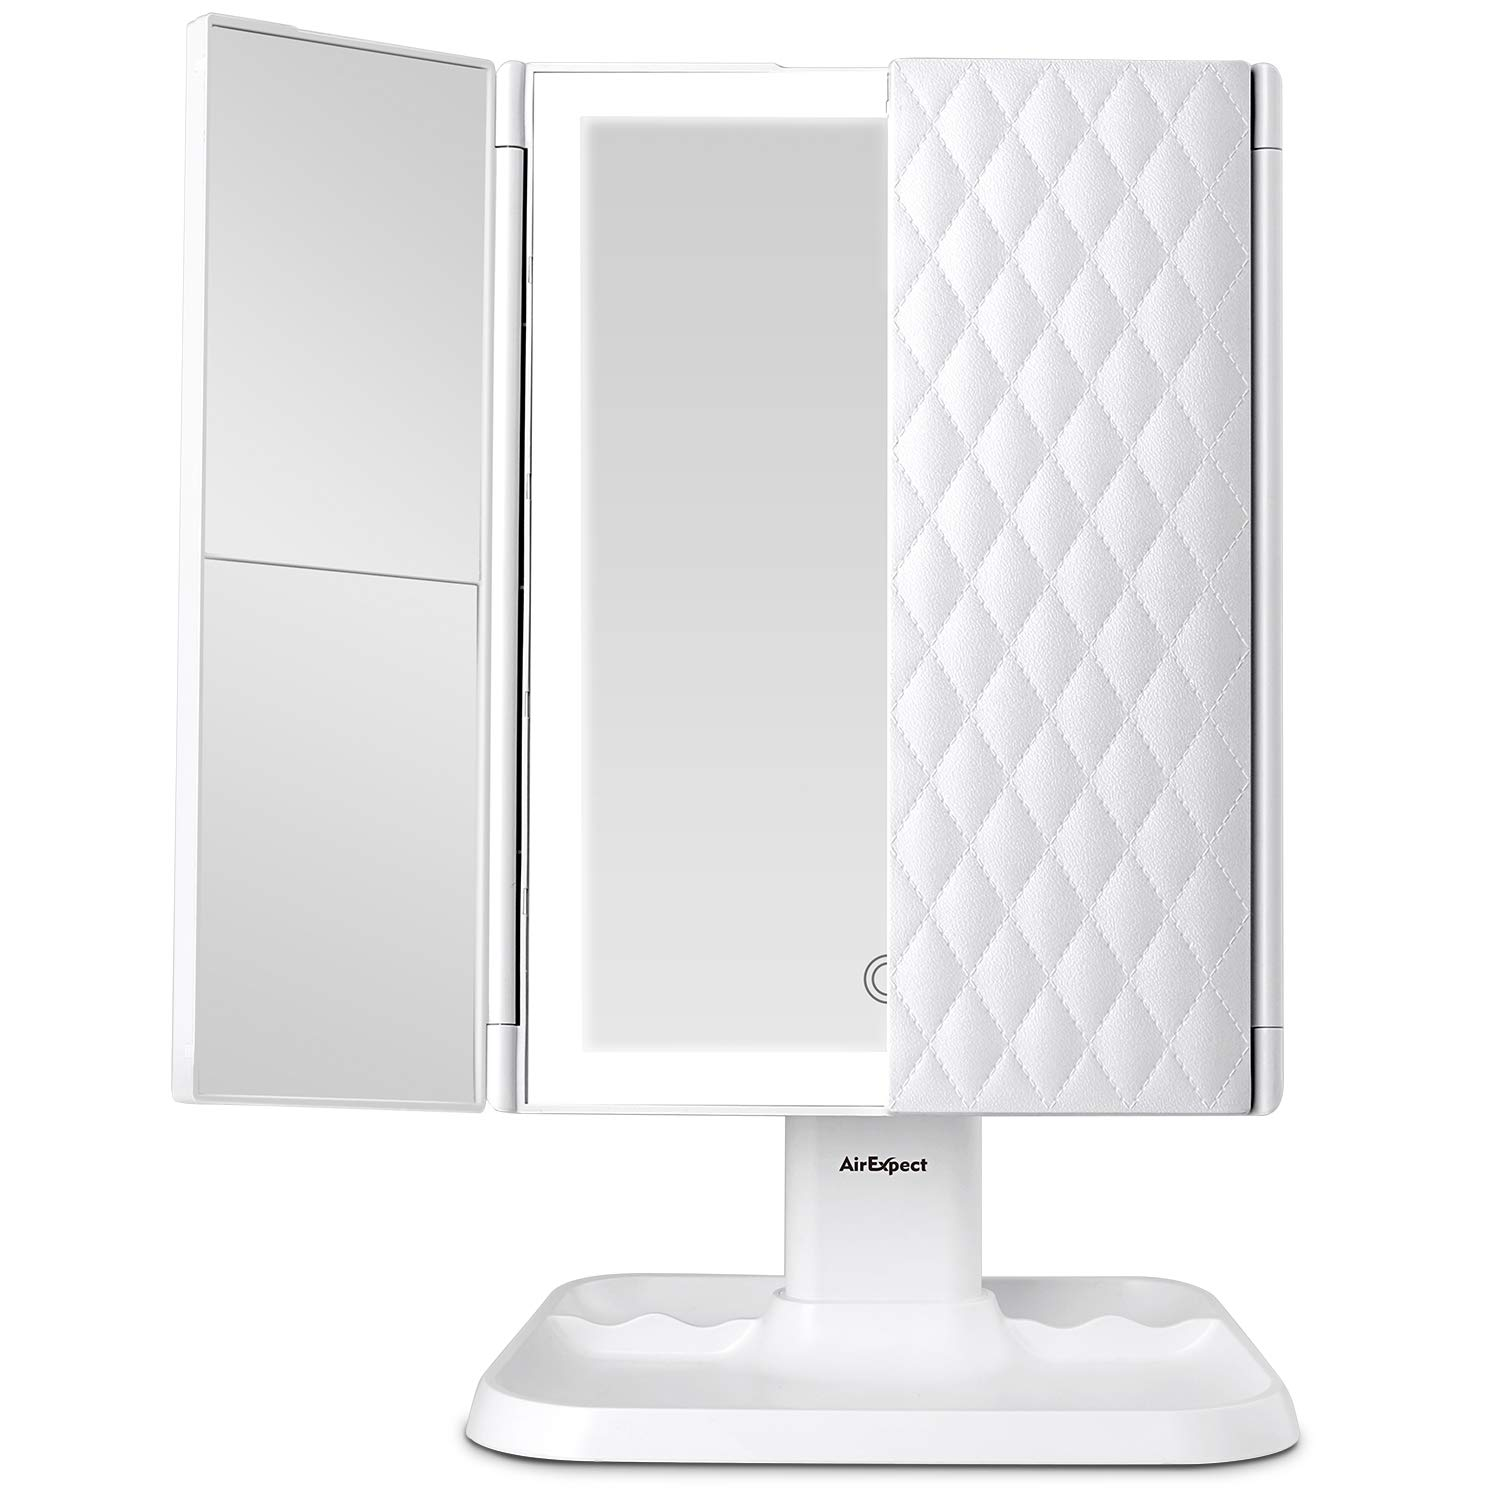 This is an image of a three-fold vanity mirror in color white, with stand.